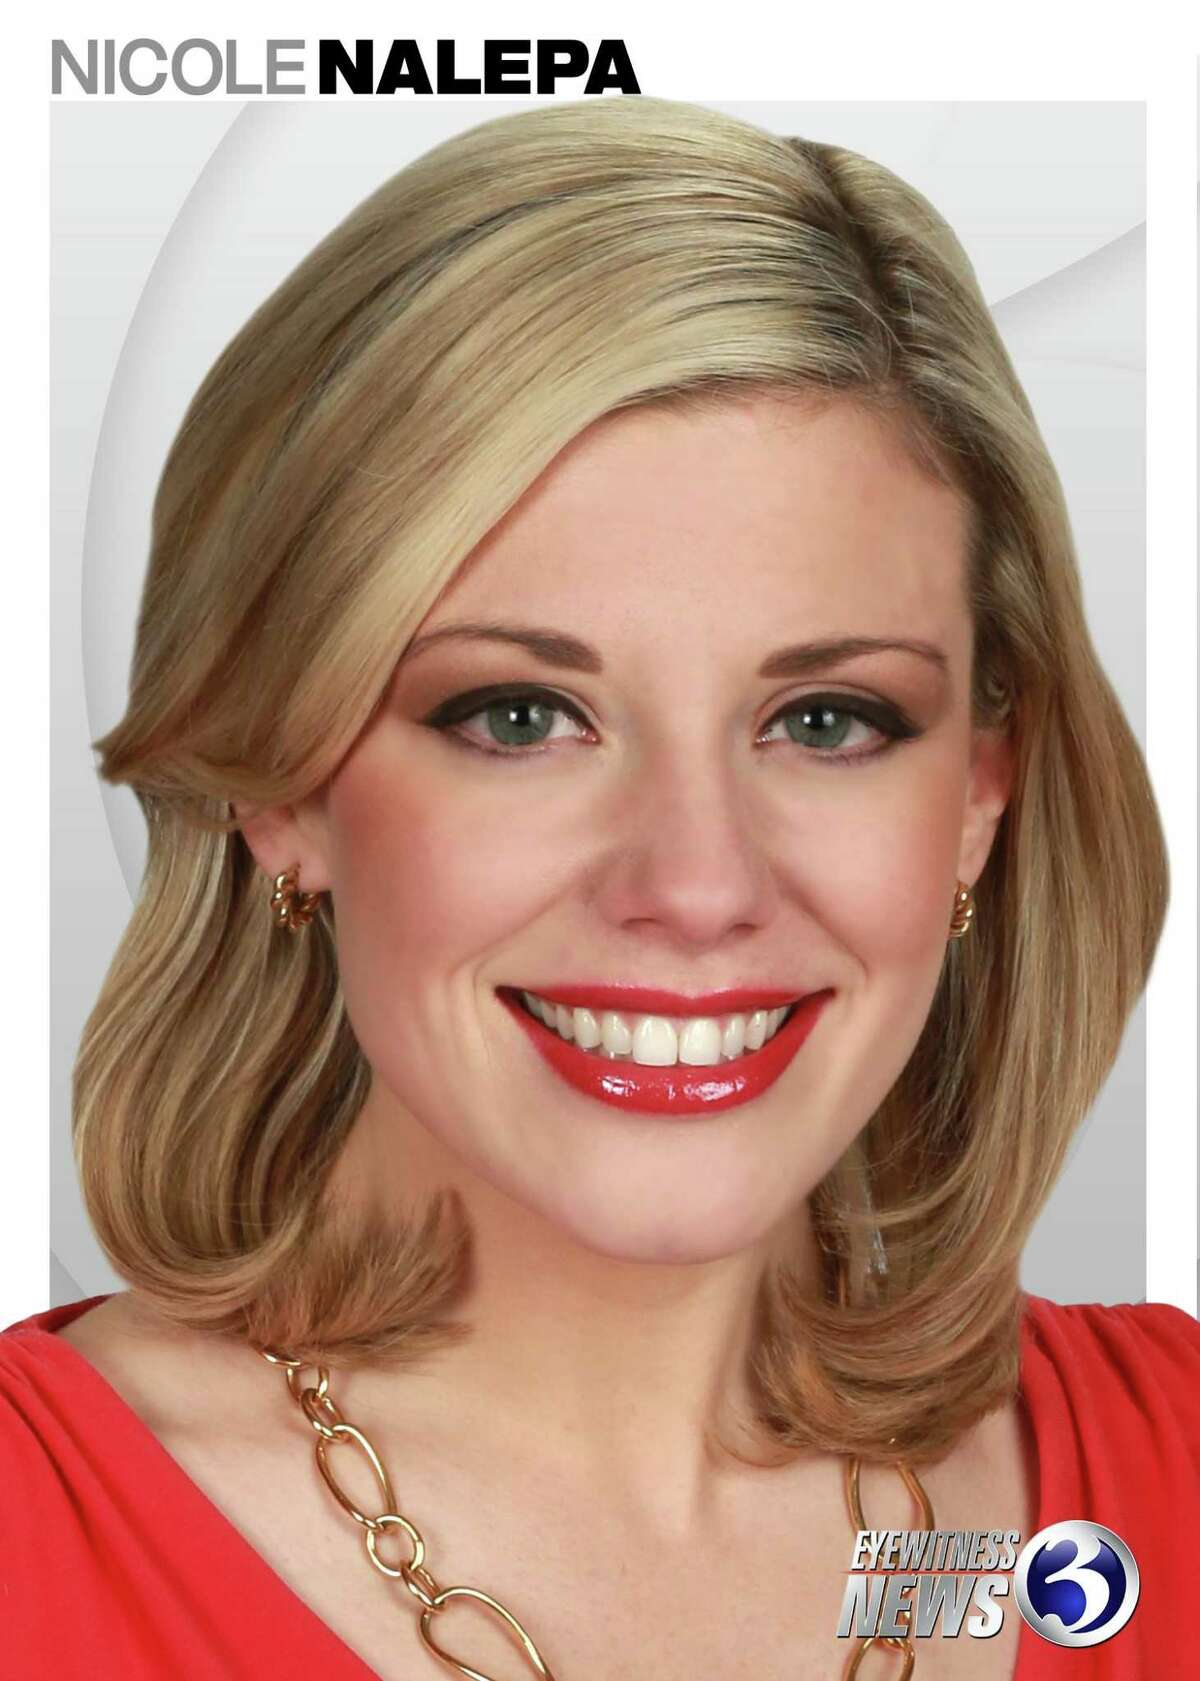 Bethlehem will host its annual Christmas Town Festival, Dec. 7-8. This year's guest is WFSB's Nicole Nalepa.